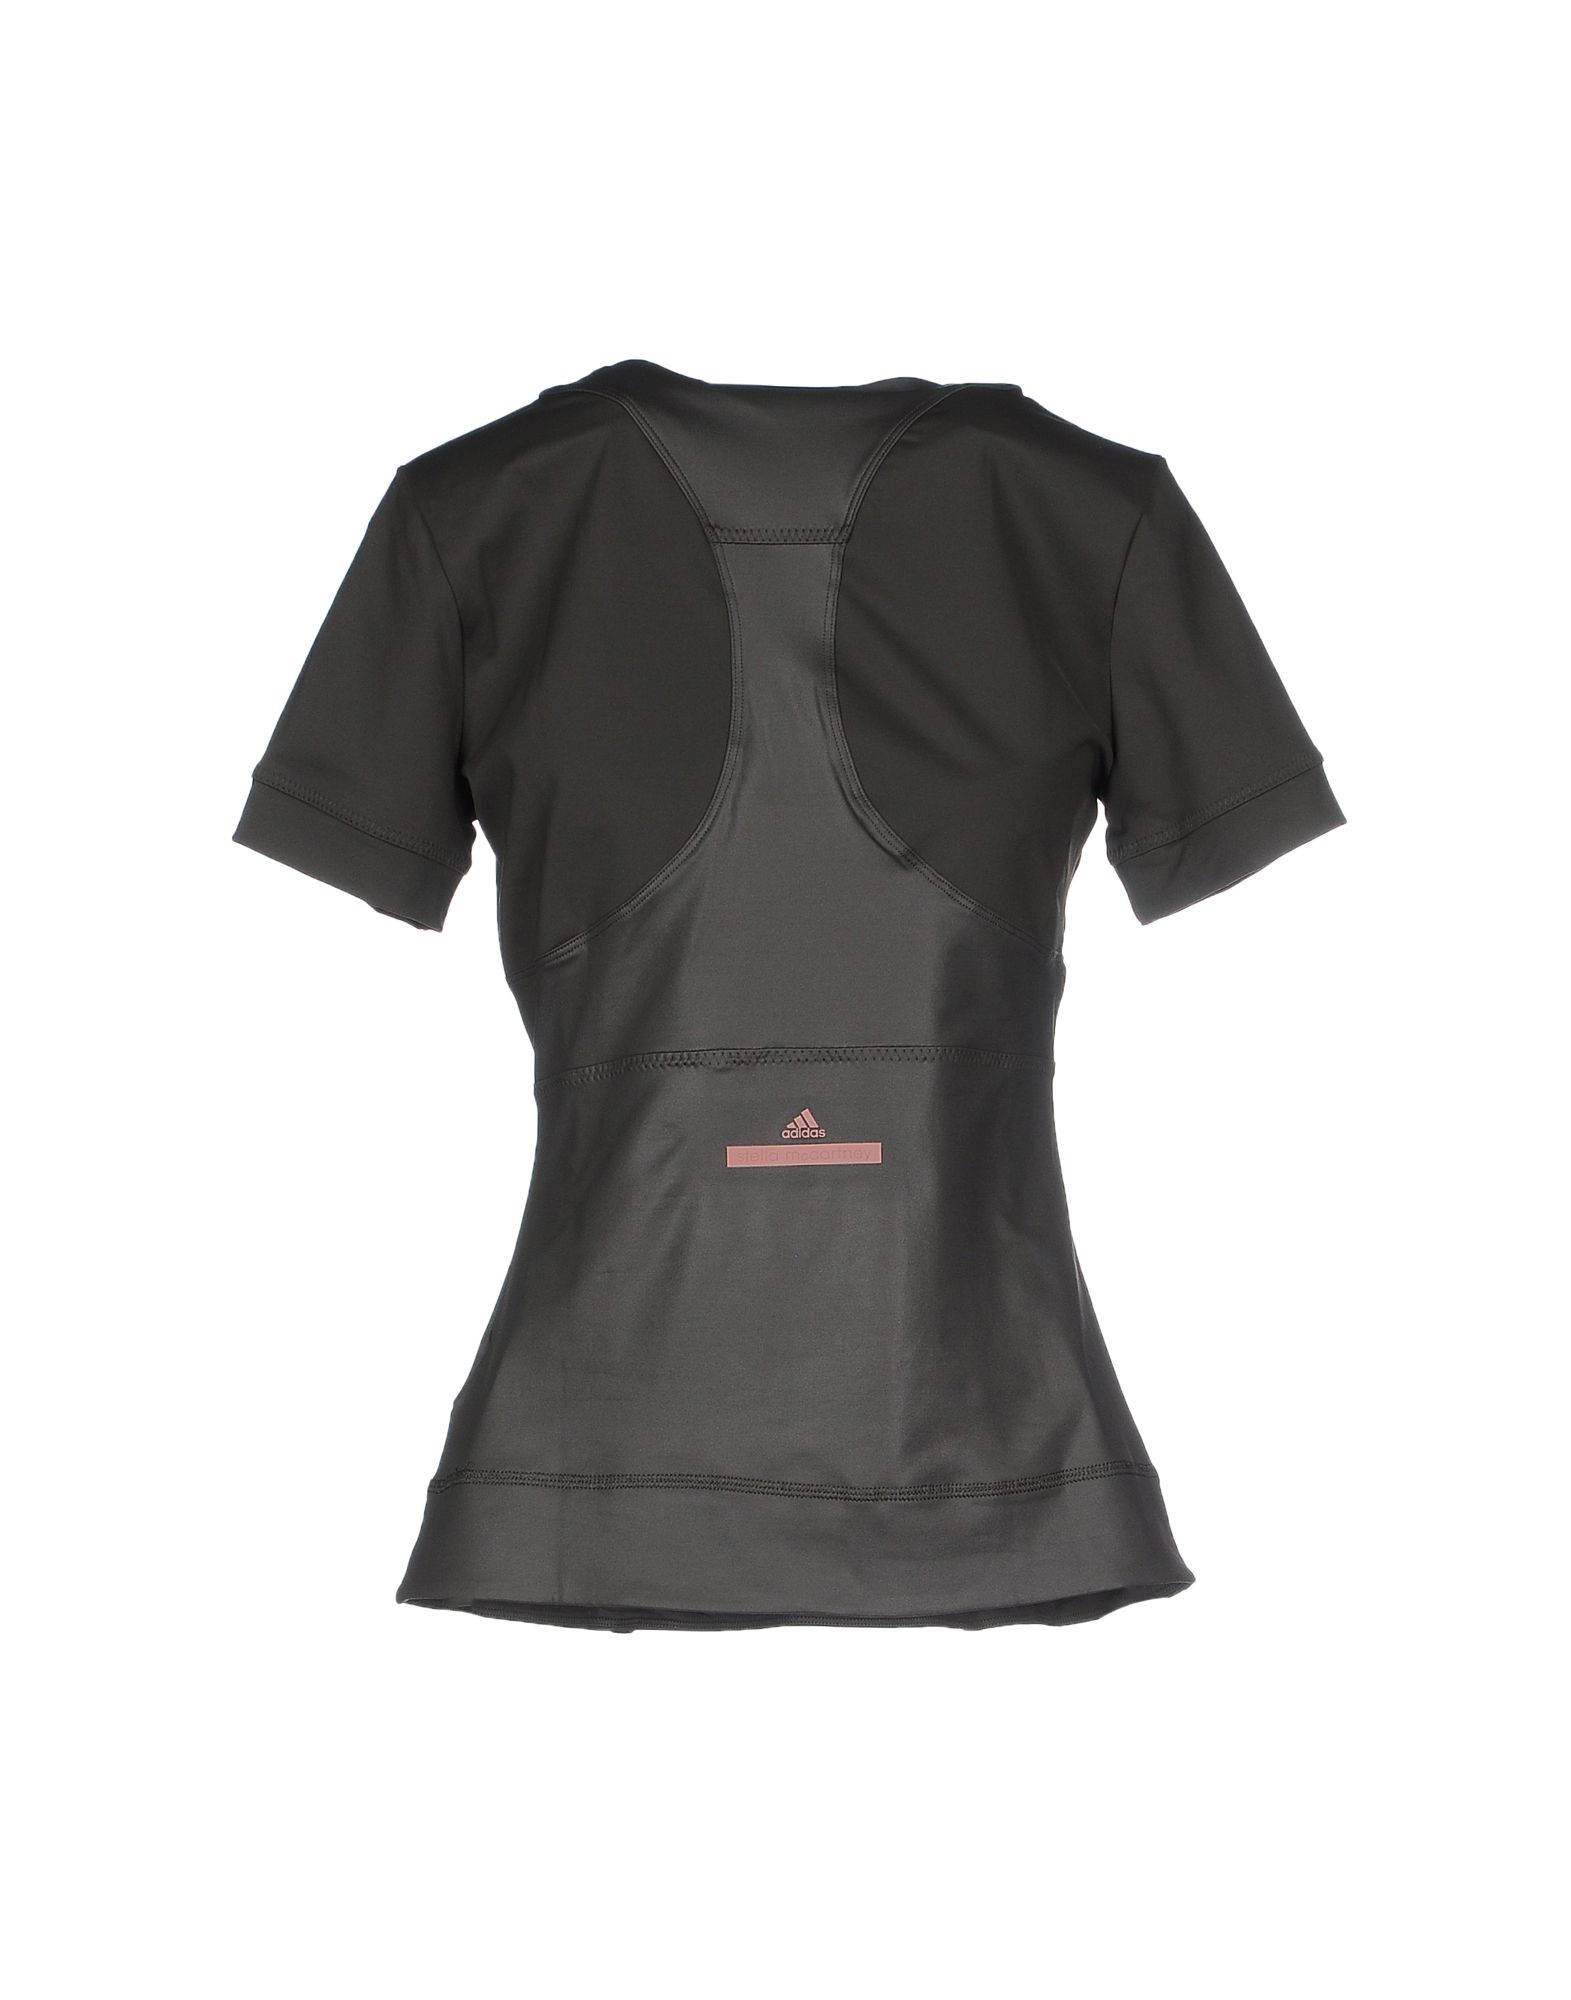 Stella mccartney t shirt in gray lyst for Stella mccartney t shirt